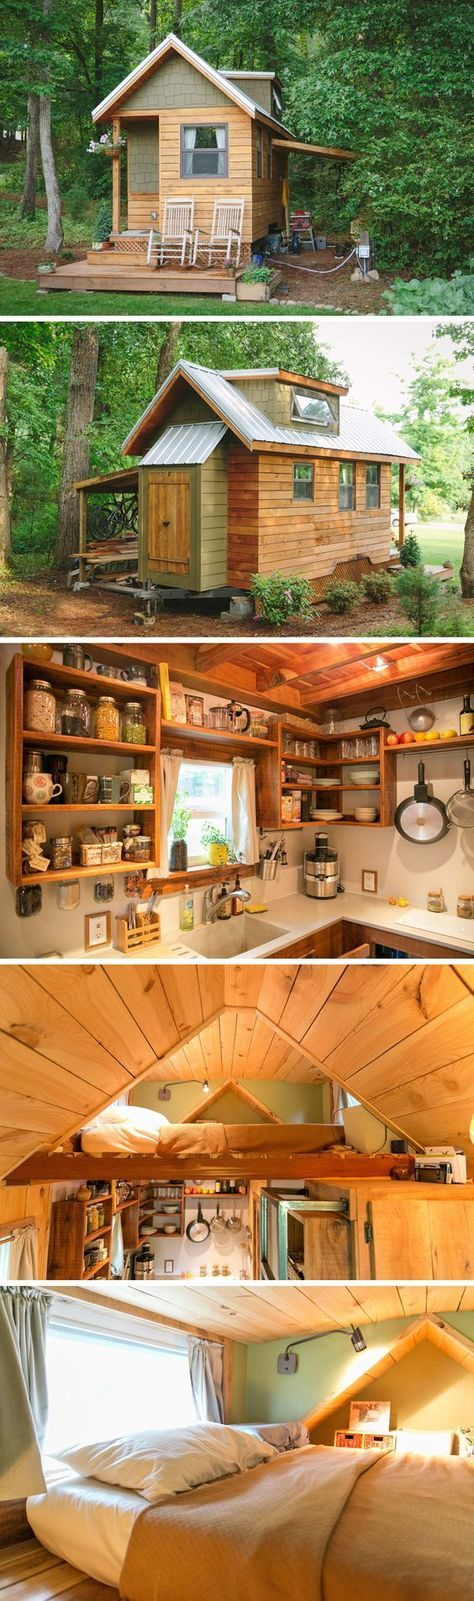 This traditional craftsman style tiny house uses hickory engineered hardwood floors, pine tongue and groove interior walls, and wooden touches both inside and out.: